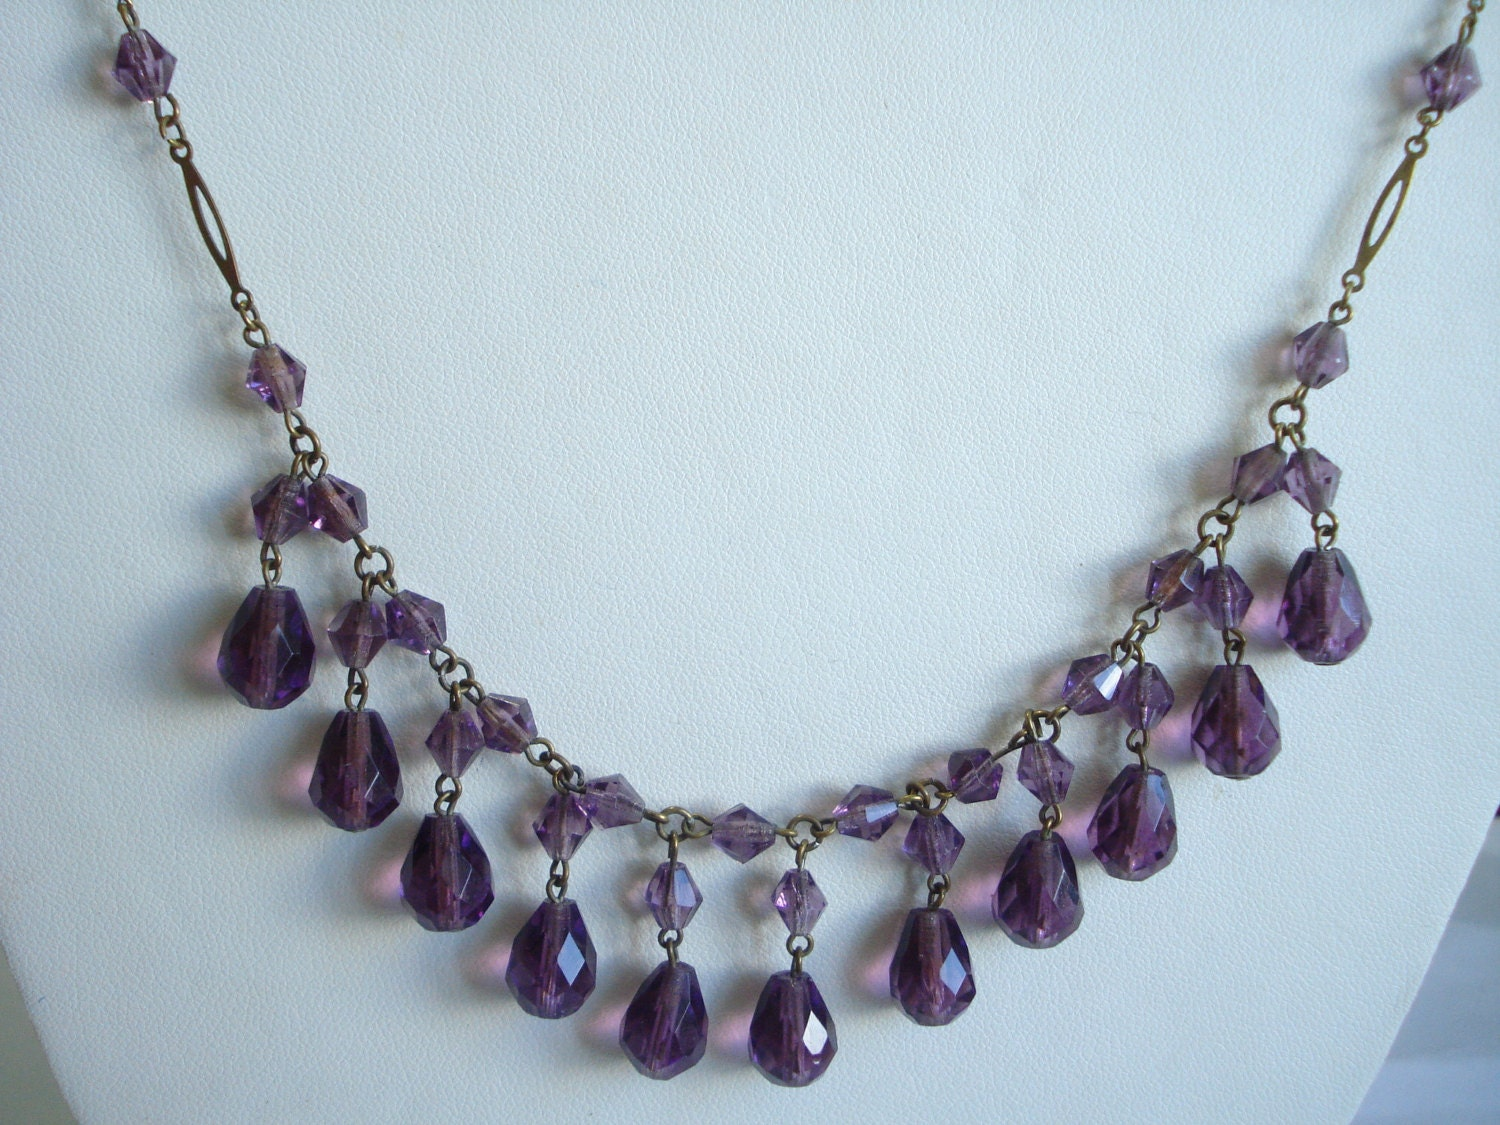 Art Deco Necklace Amethyst Glass Beads and Drops 1920s 1930s